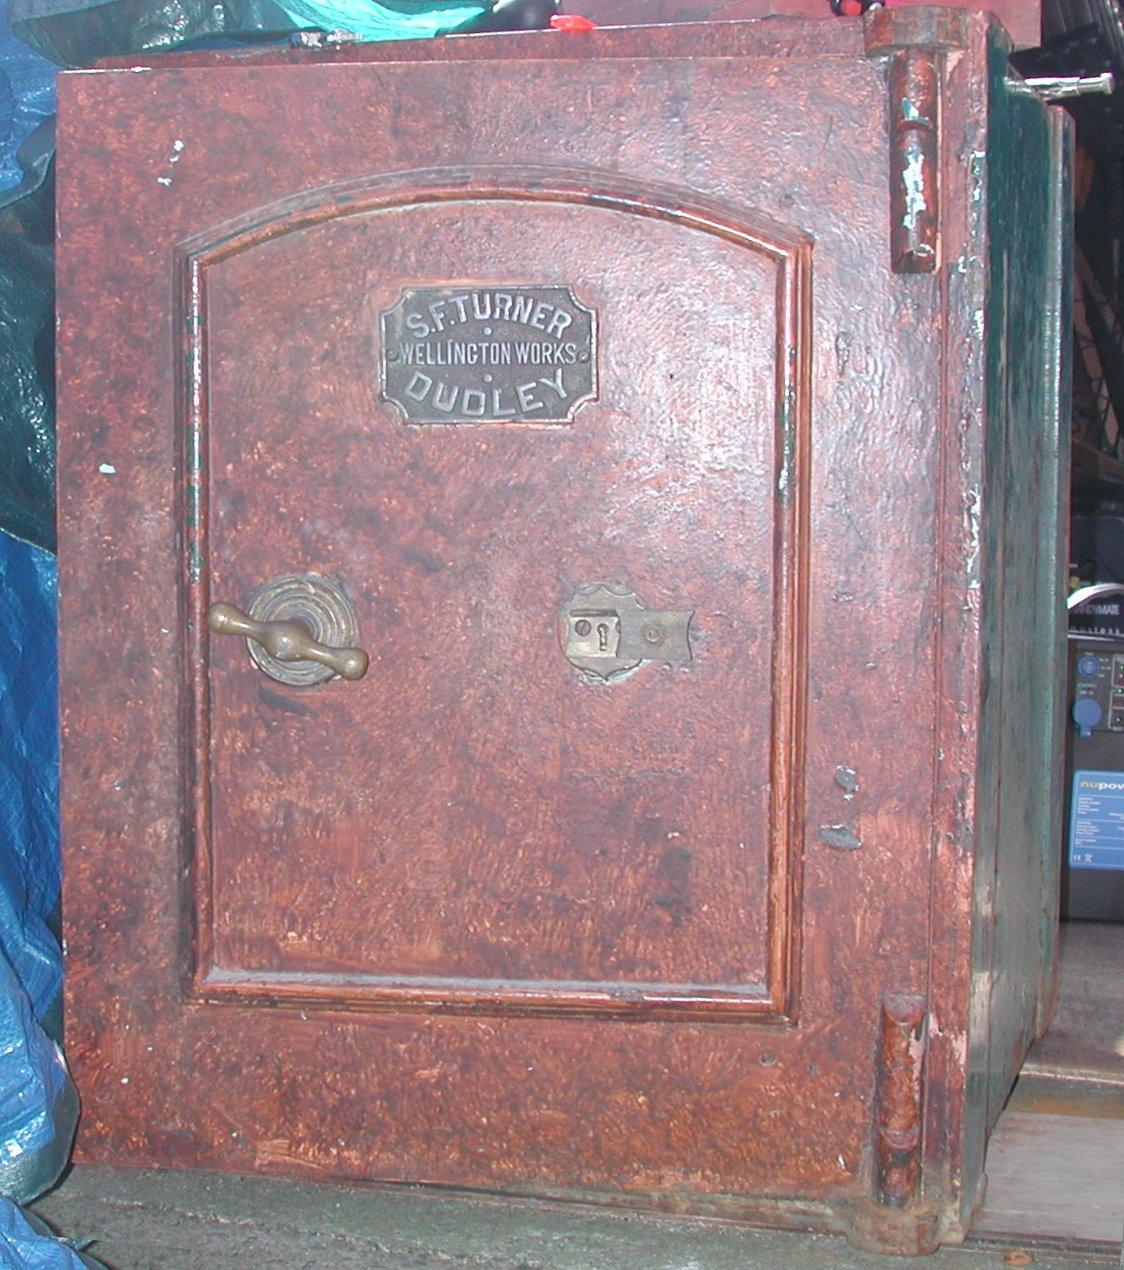 SF Turner Wellington Works Dudley Safe F 1 - S. Griffiths & Sons Safe. Anyone know the age? Co. Histo